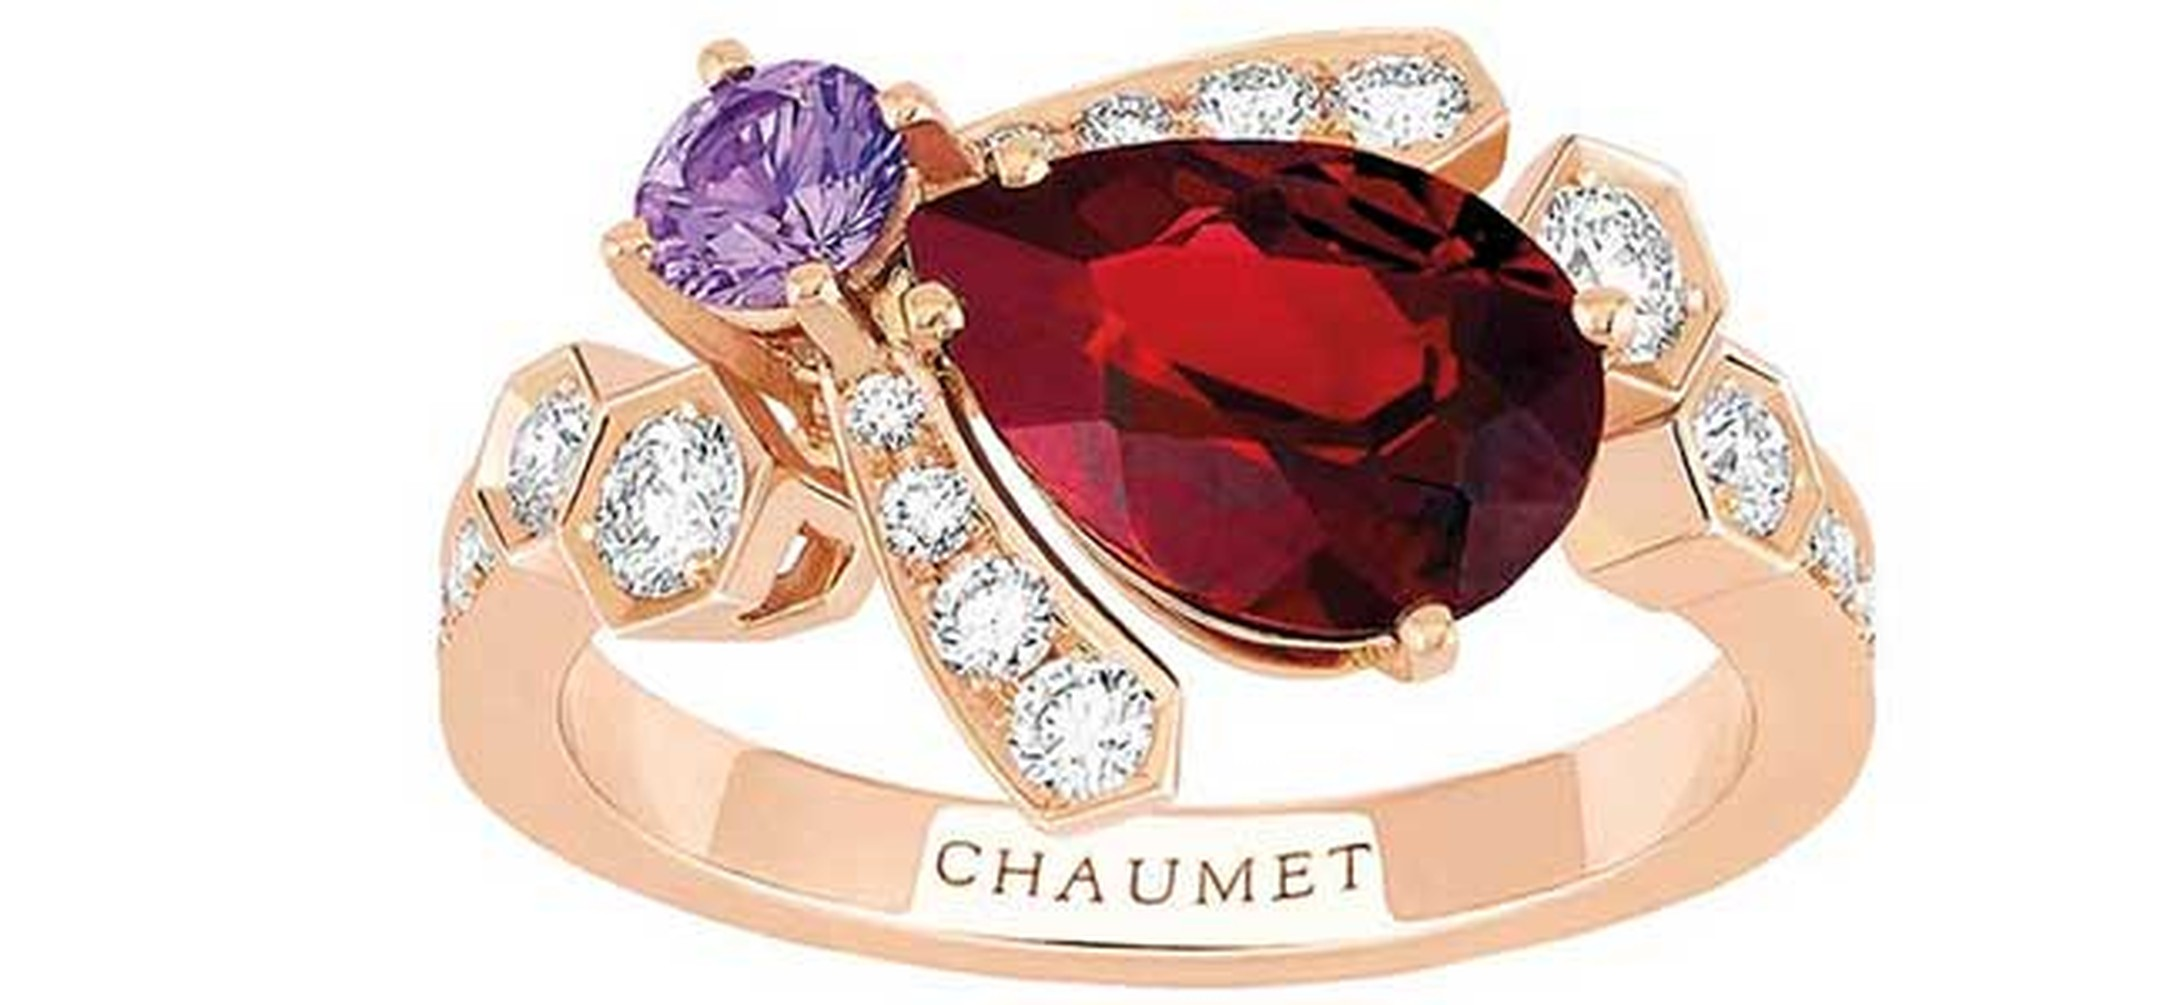 Chaumet ring HP